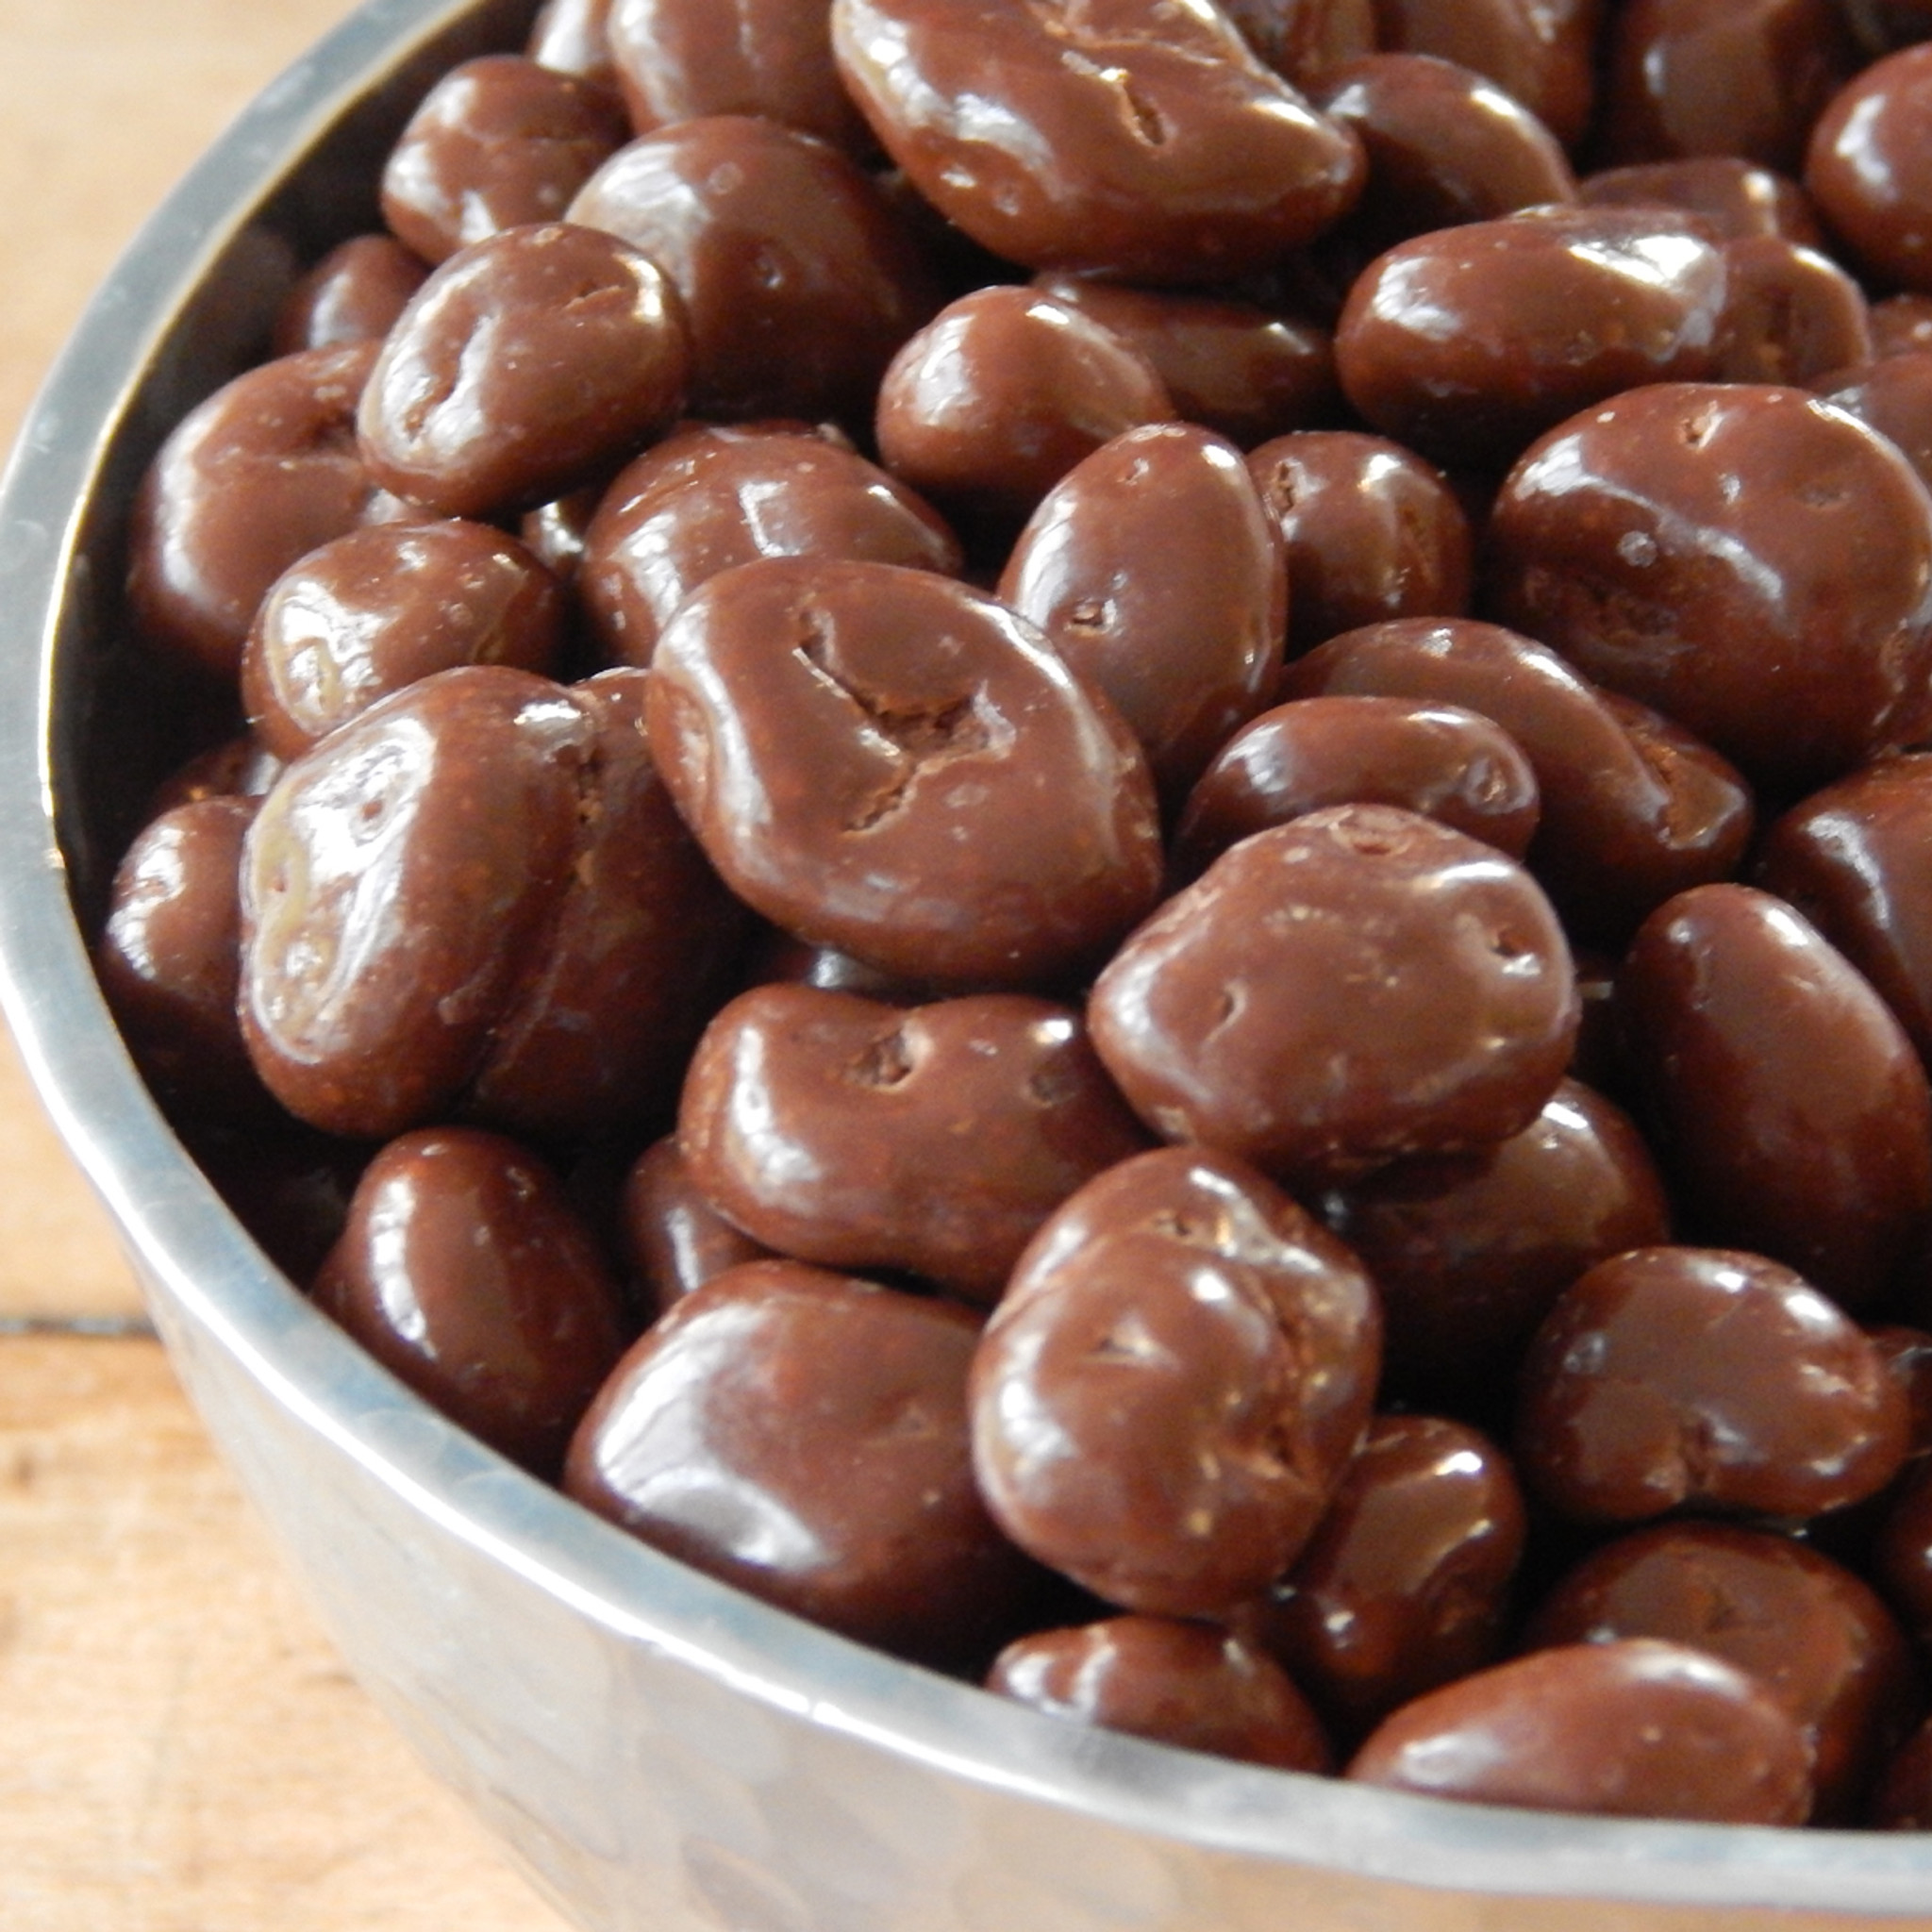 Chocolate Covered Raisins | 1 lb. bag